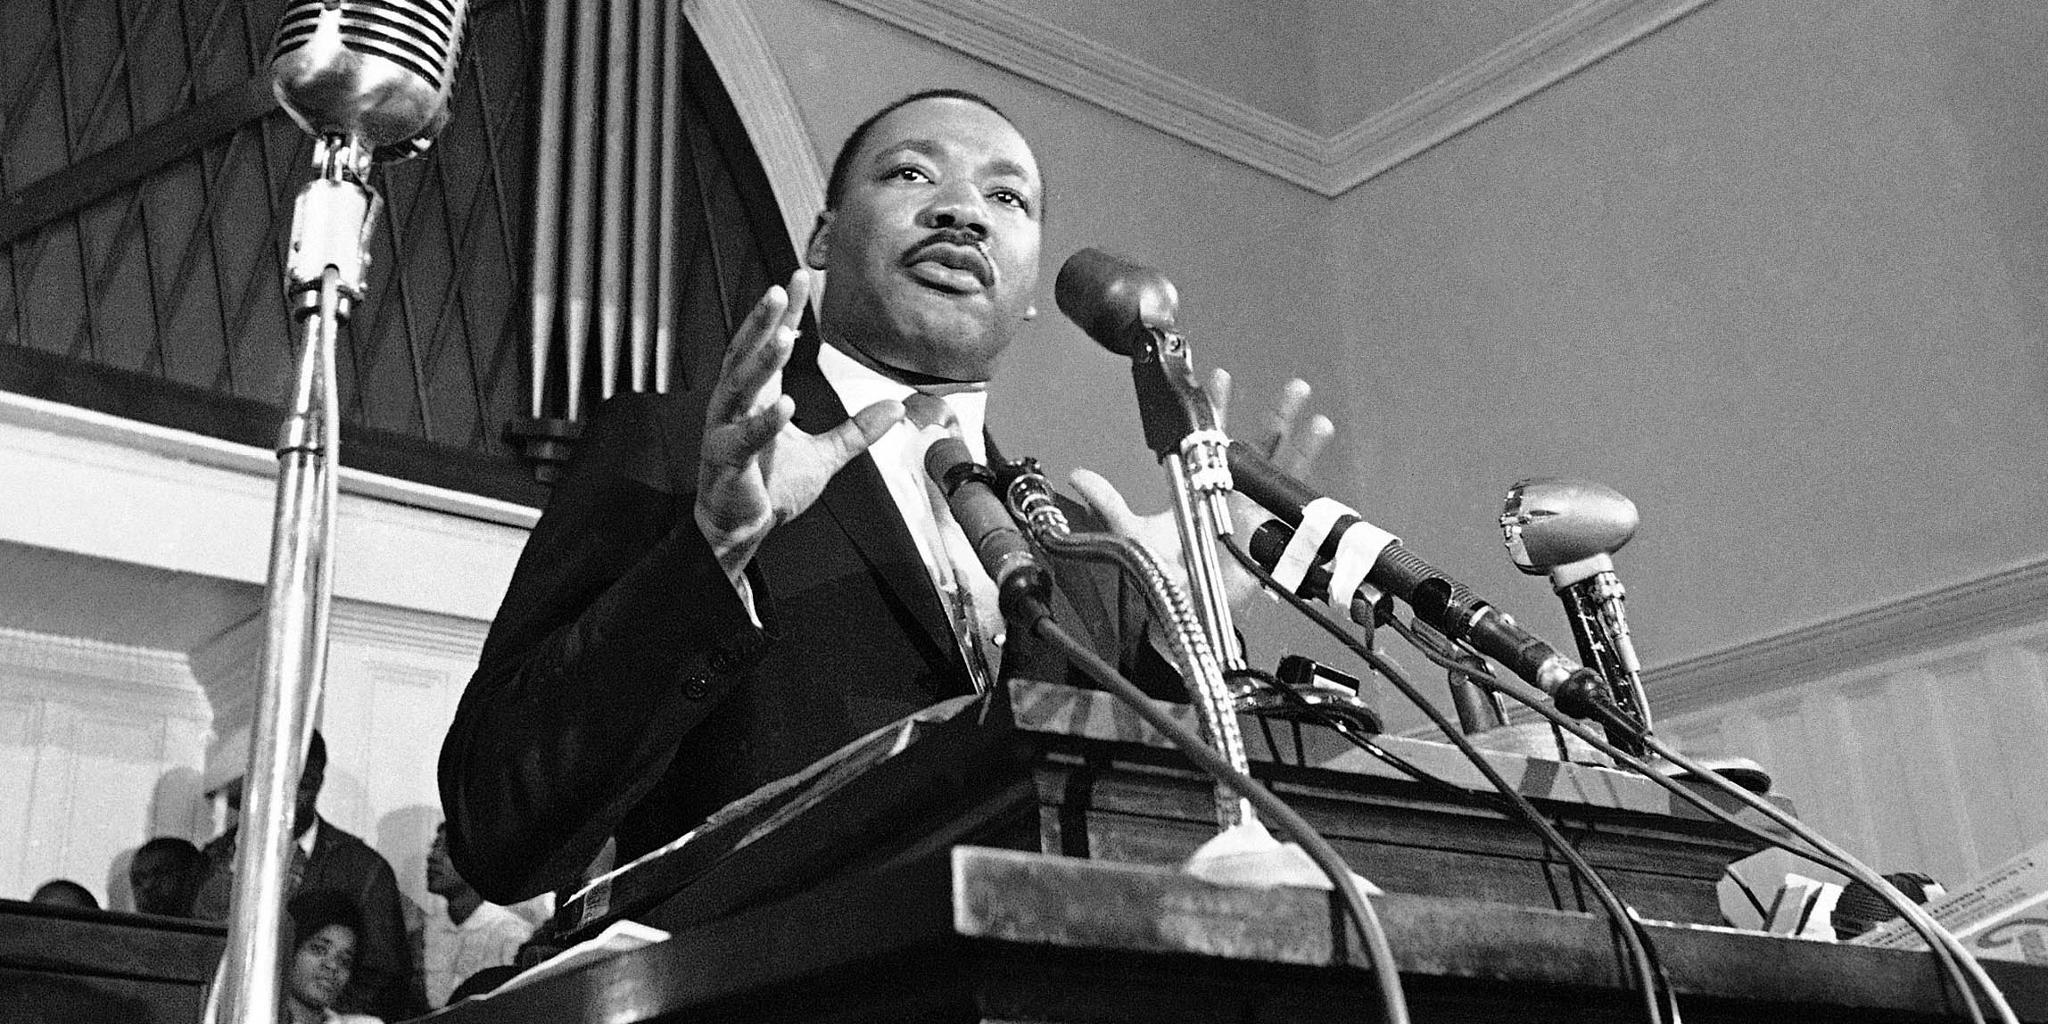 Players pay tribute to Dr. Martin Luther King Jr. https://t.co/Bfs8a8223N #MLK https://t.co/KxUpZT45wn